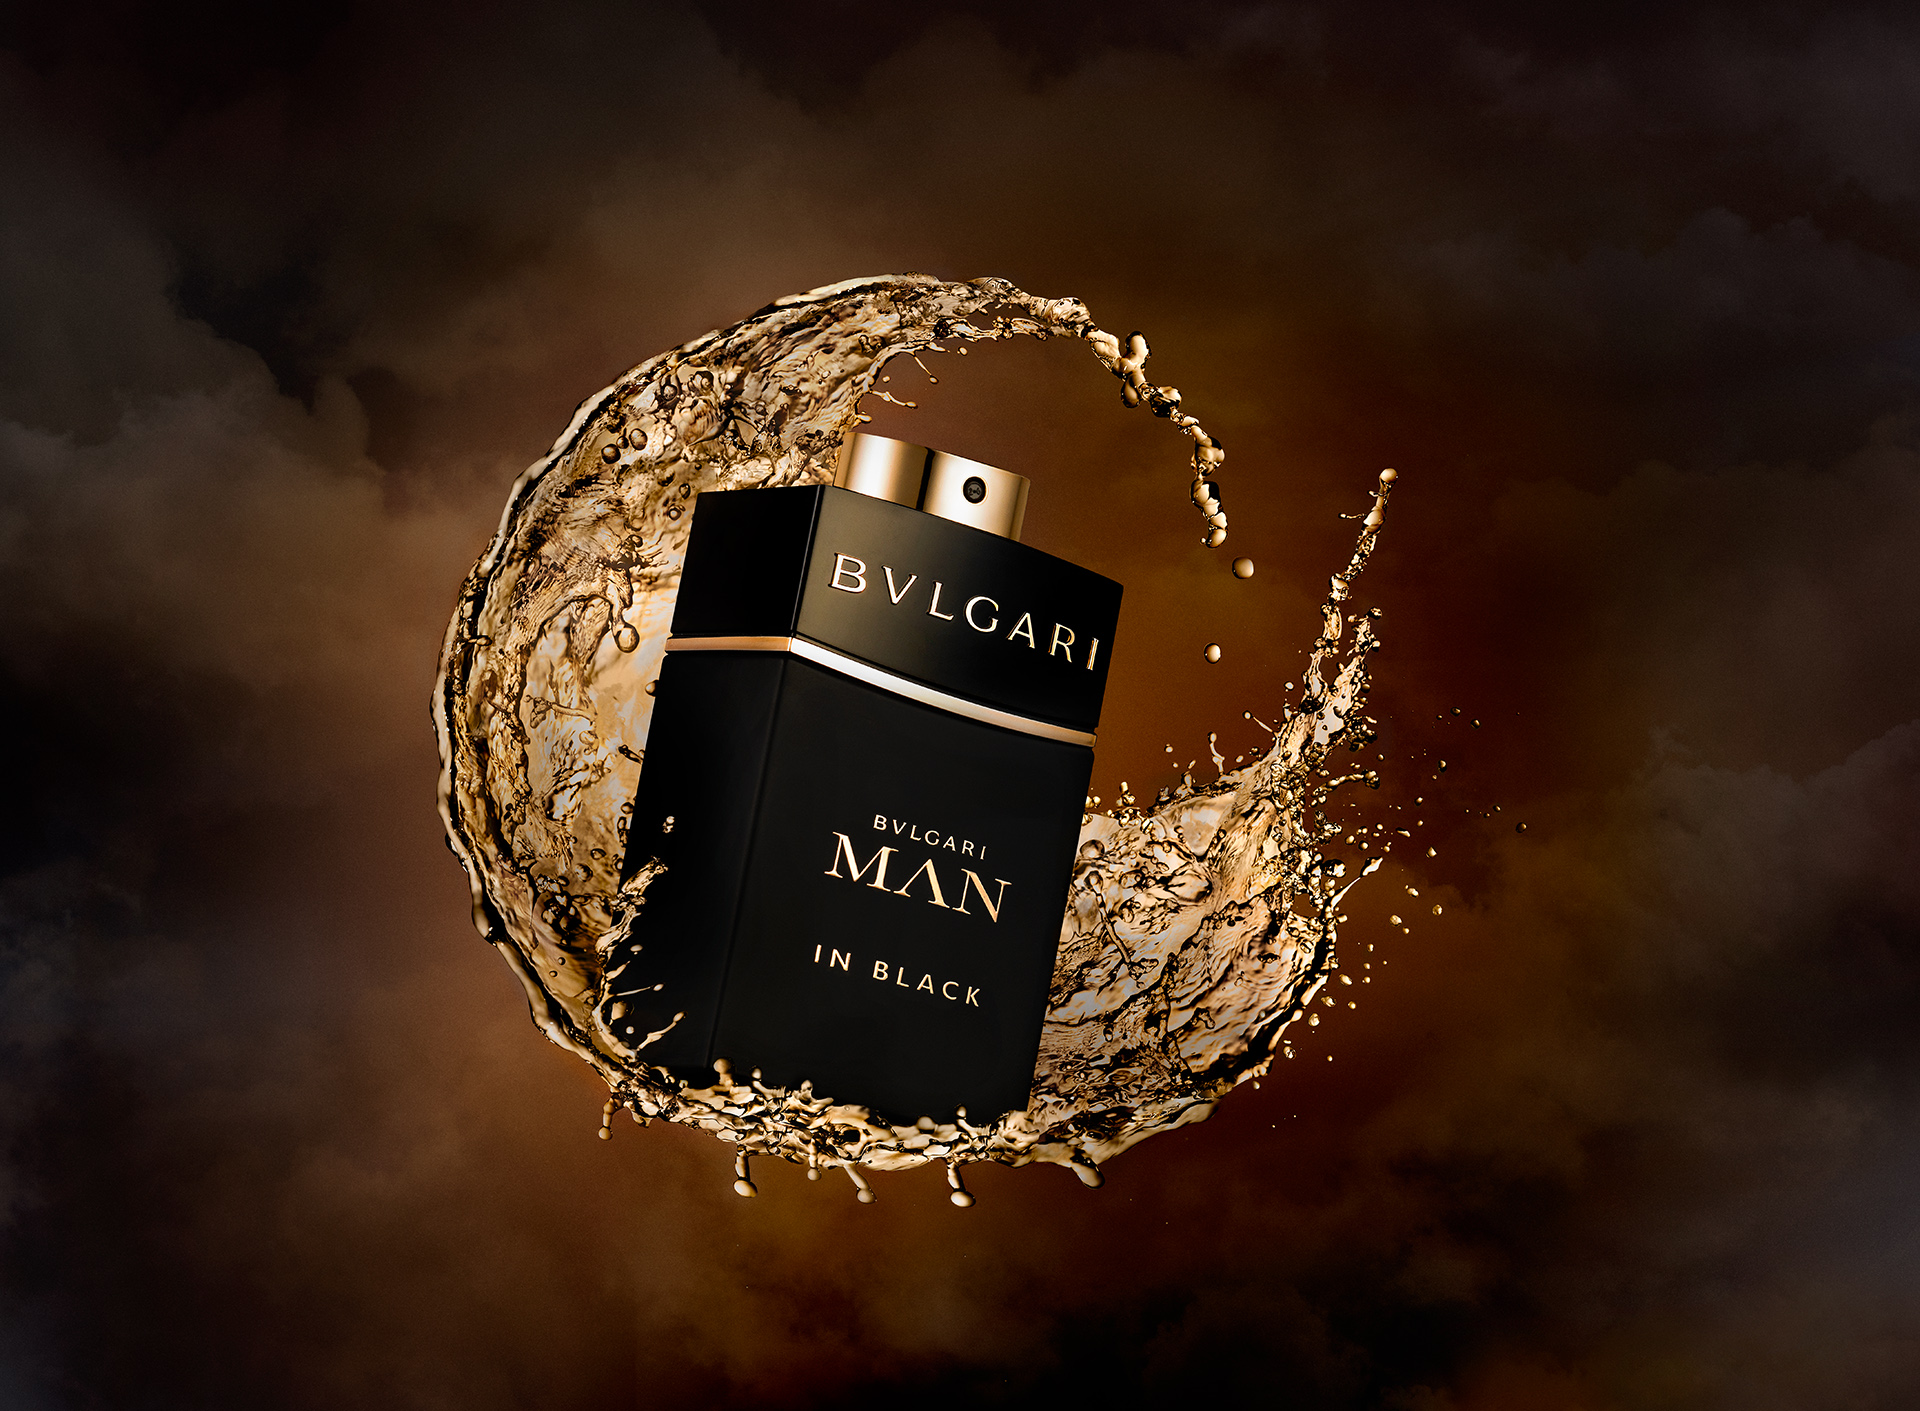 Bvlgari Man - Angel Retouch - Creative Retouching for brands and ...